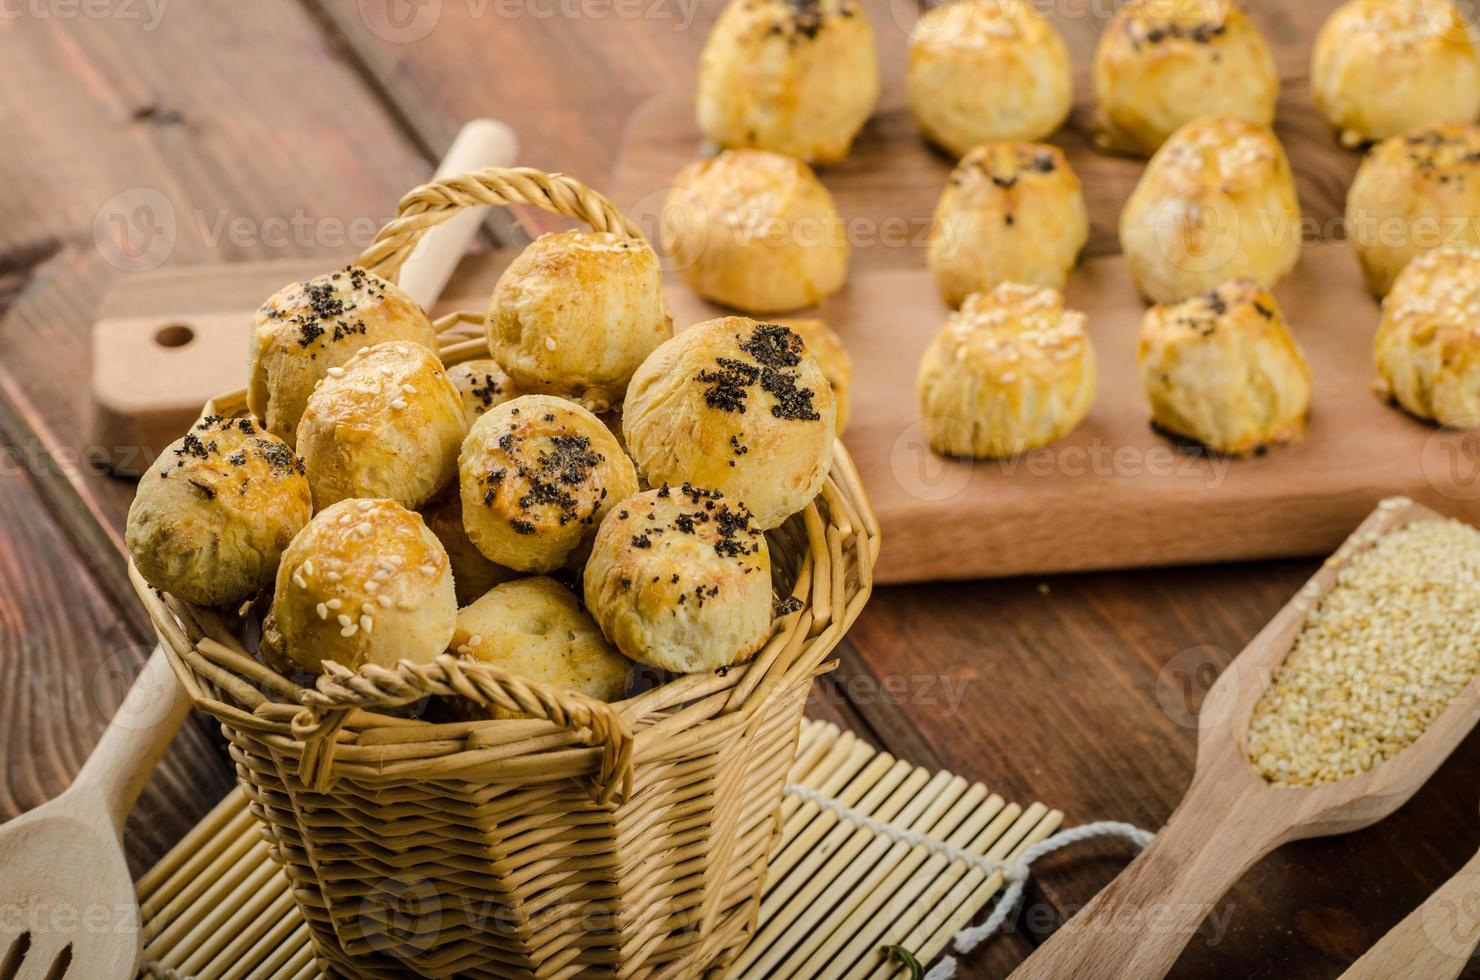 Cheesy Bites with garlic and blue cheese photo